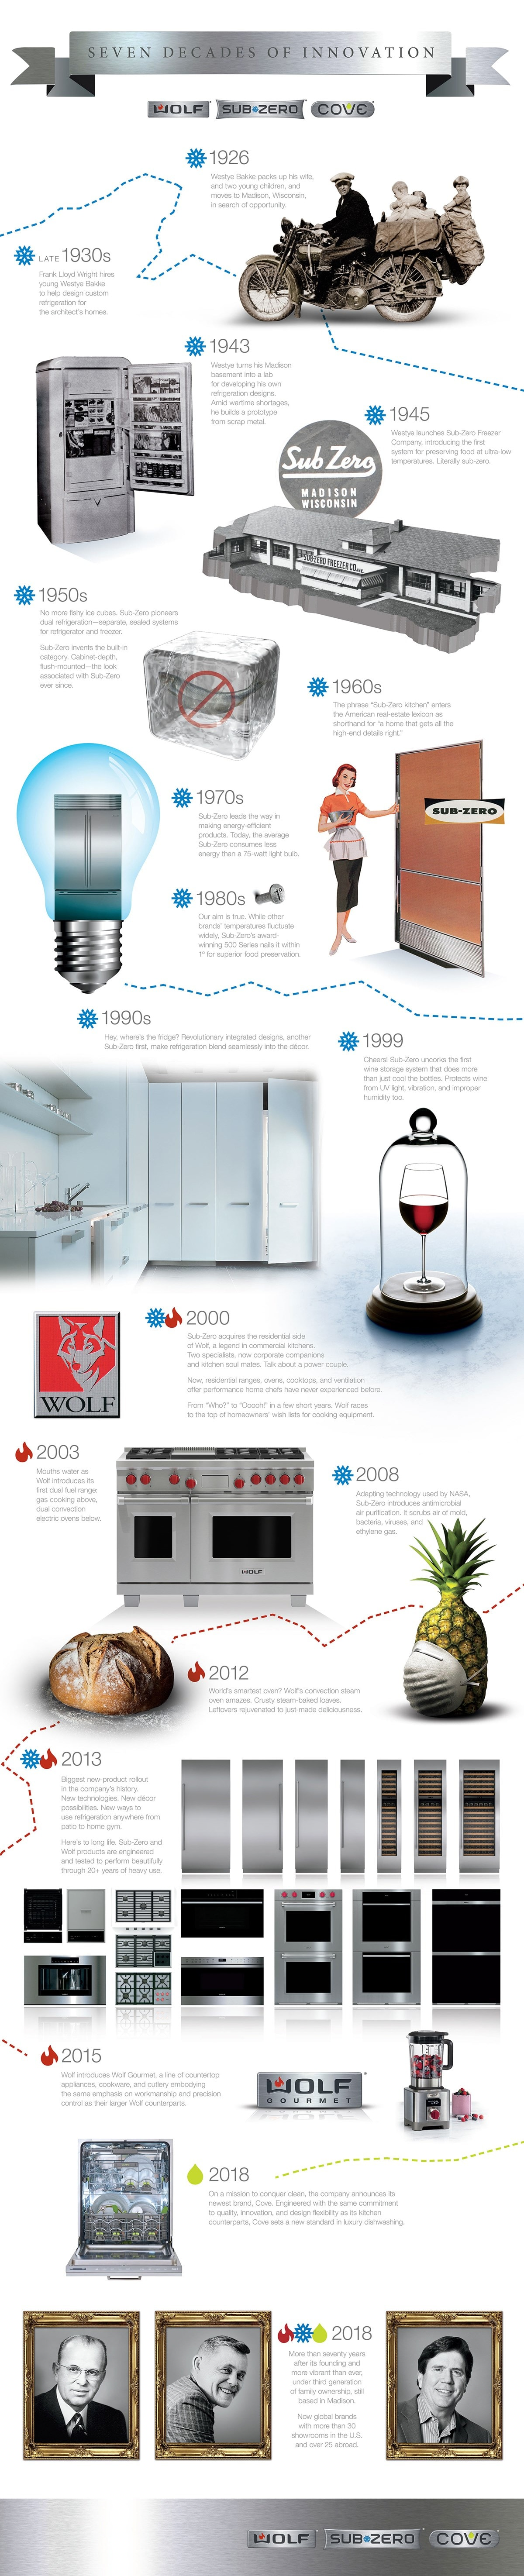 70 Years of Sub-Zero & Wolf Appliance Heritage